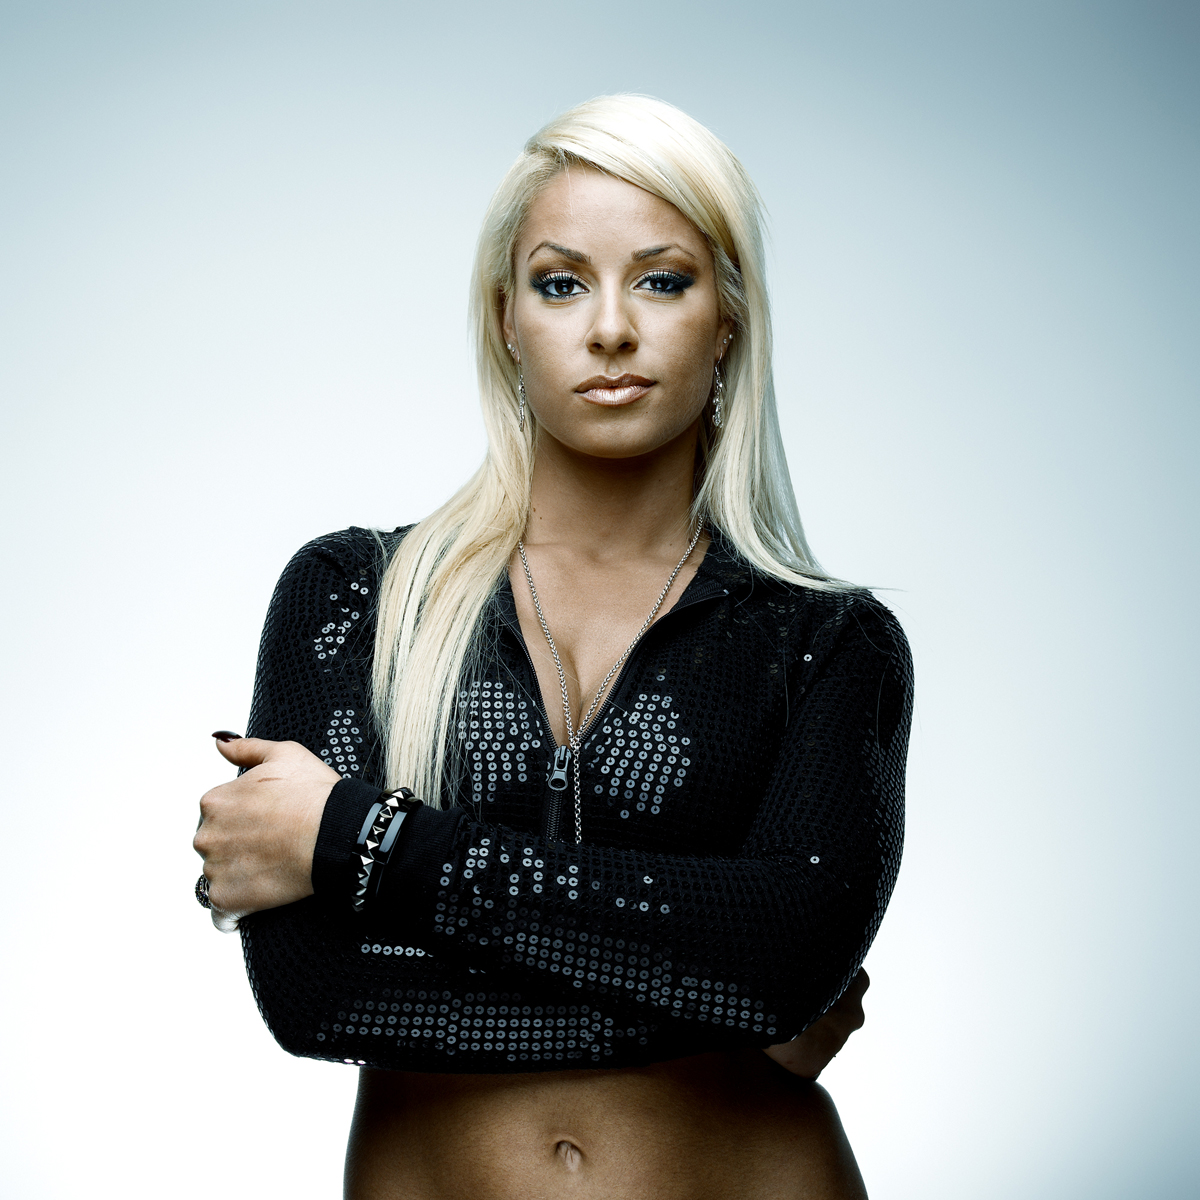 maryse ouellet fansitemaryse ouellet age, maryse ouellet fansite, maryse ouellet twitter, maryse ouellet wedding, maryse ouellet the miz, maryse ouellet return, maryse ouellet facebook, maryse ouellet interview, maryse ouellet sharknado 3, maryse ouellet icons, maryse ouellet ig, maryse ouellet real estate, maryse ouellet theme, maryse ouellet website, maryse ouellet ebay, maryse ouellet realtor, maryse ouellet quotes, maryse ouellet height, maryse ouellet net worth